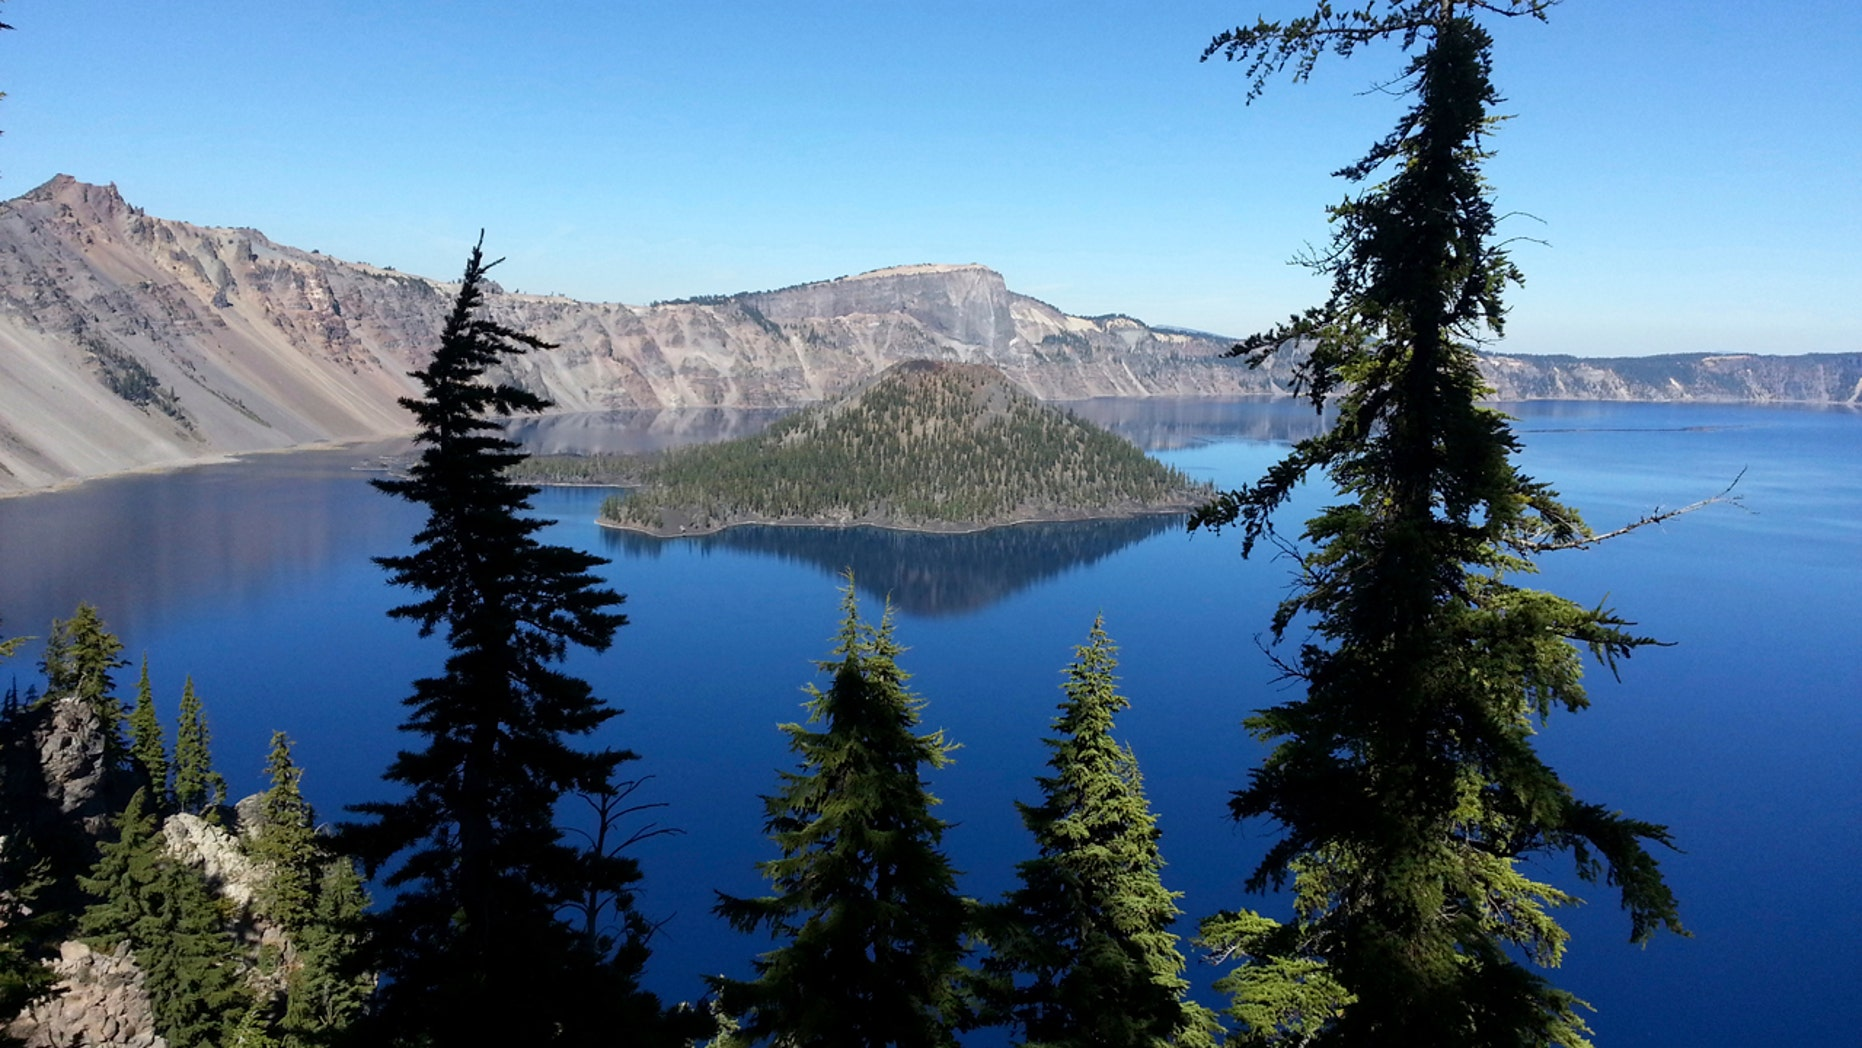 This Oct. 5, 2015, file photo shows Wizard Island in Crater Lake from the rim trail between Rim Village and Watchman Peak at Crater Lake, Ore.